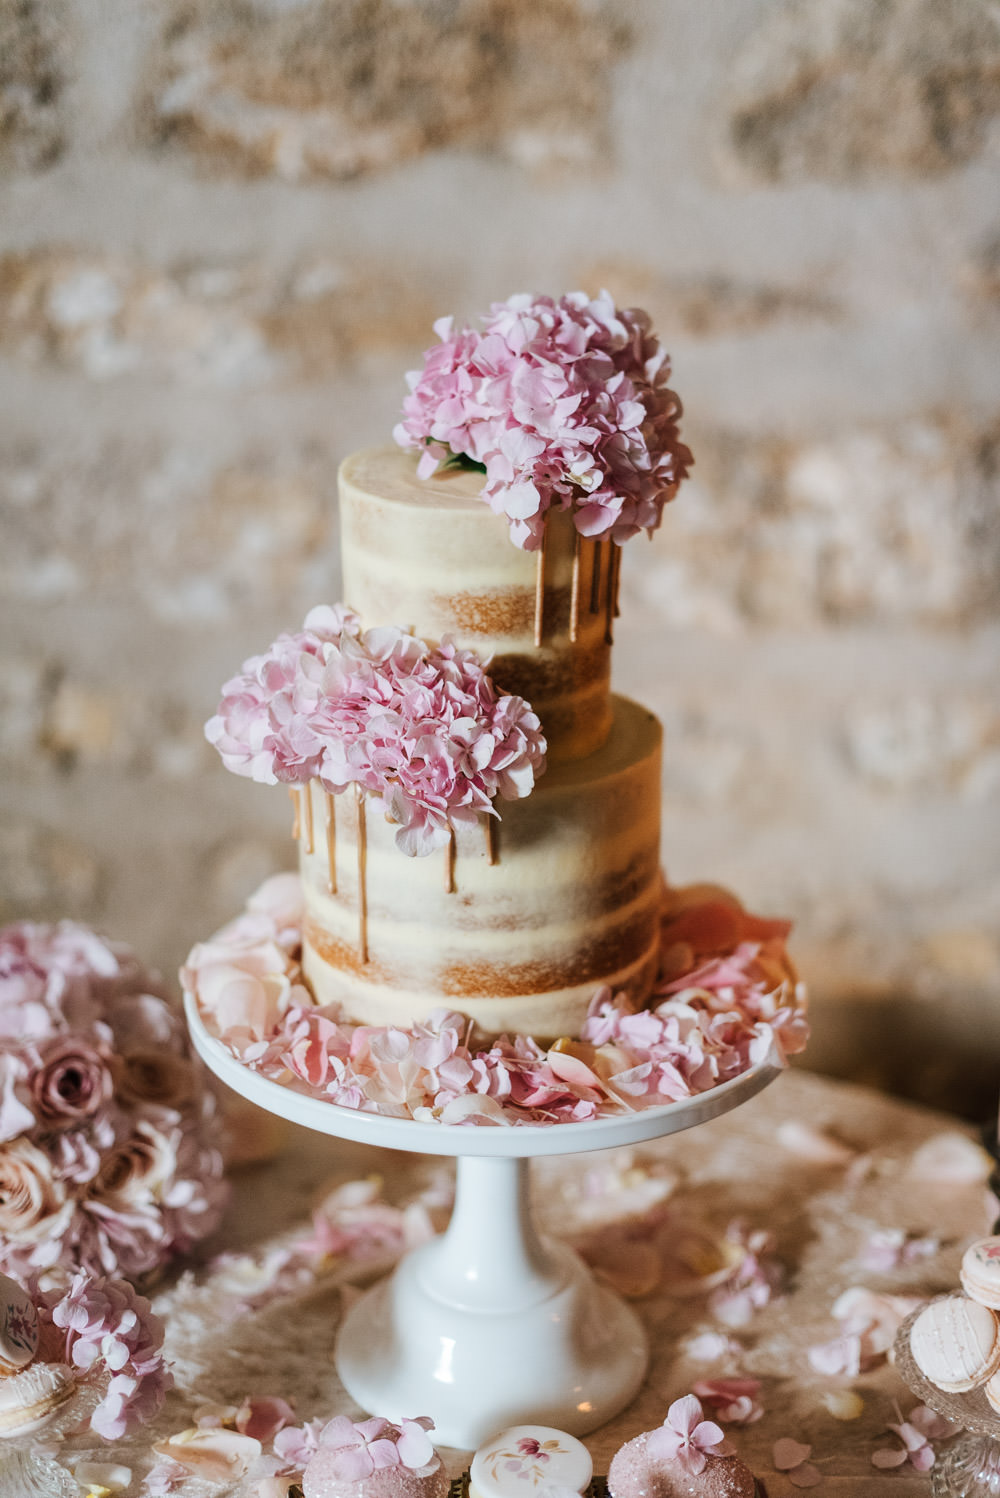 Floral Cake Pretty Pink Flowers Candles Dessert Cupcakes Naked Sponge Layer Cherry Blossom Wedding Ideas Sugarbird Photography